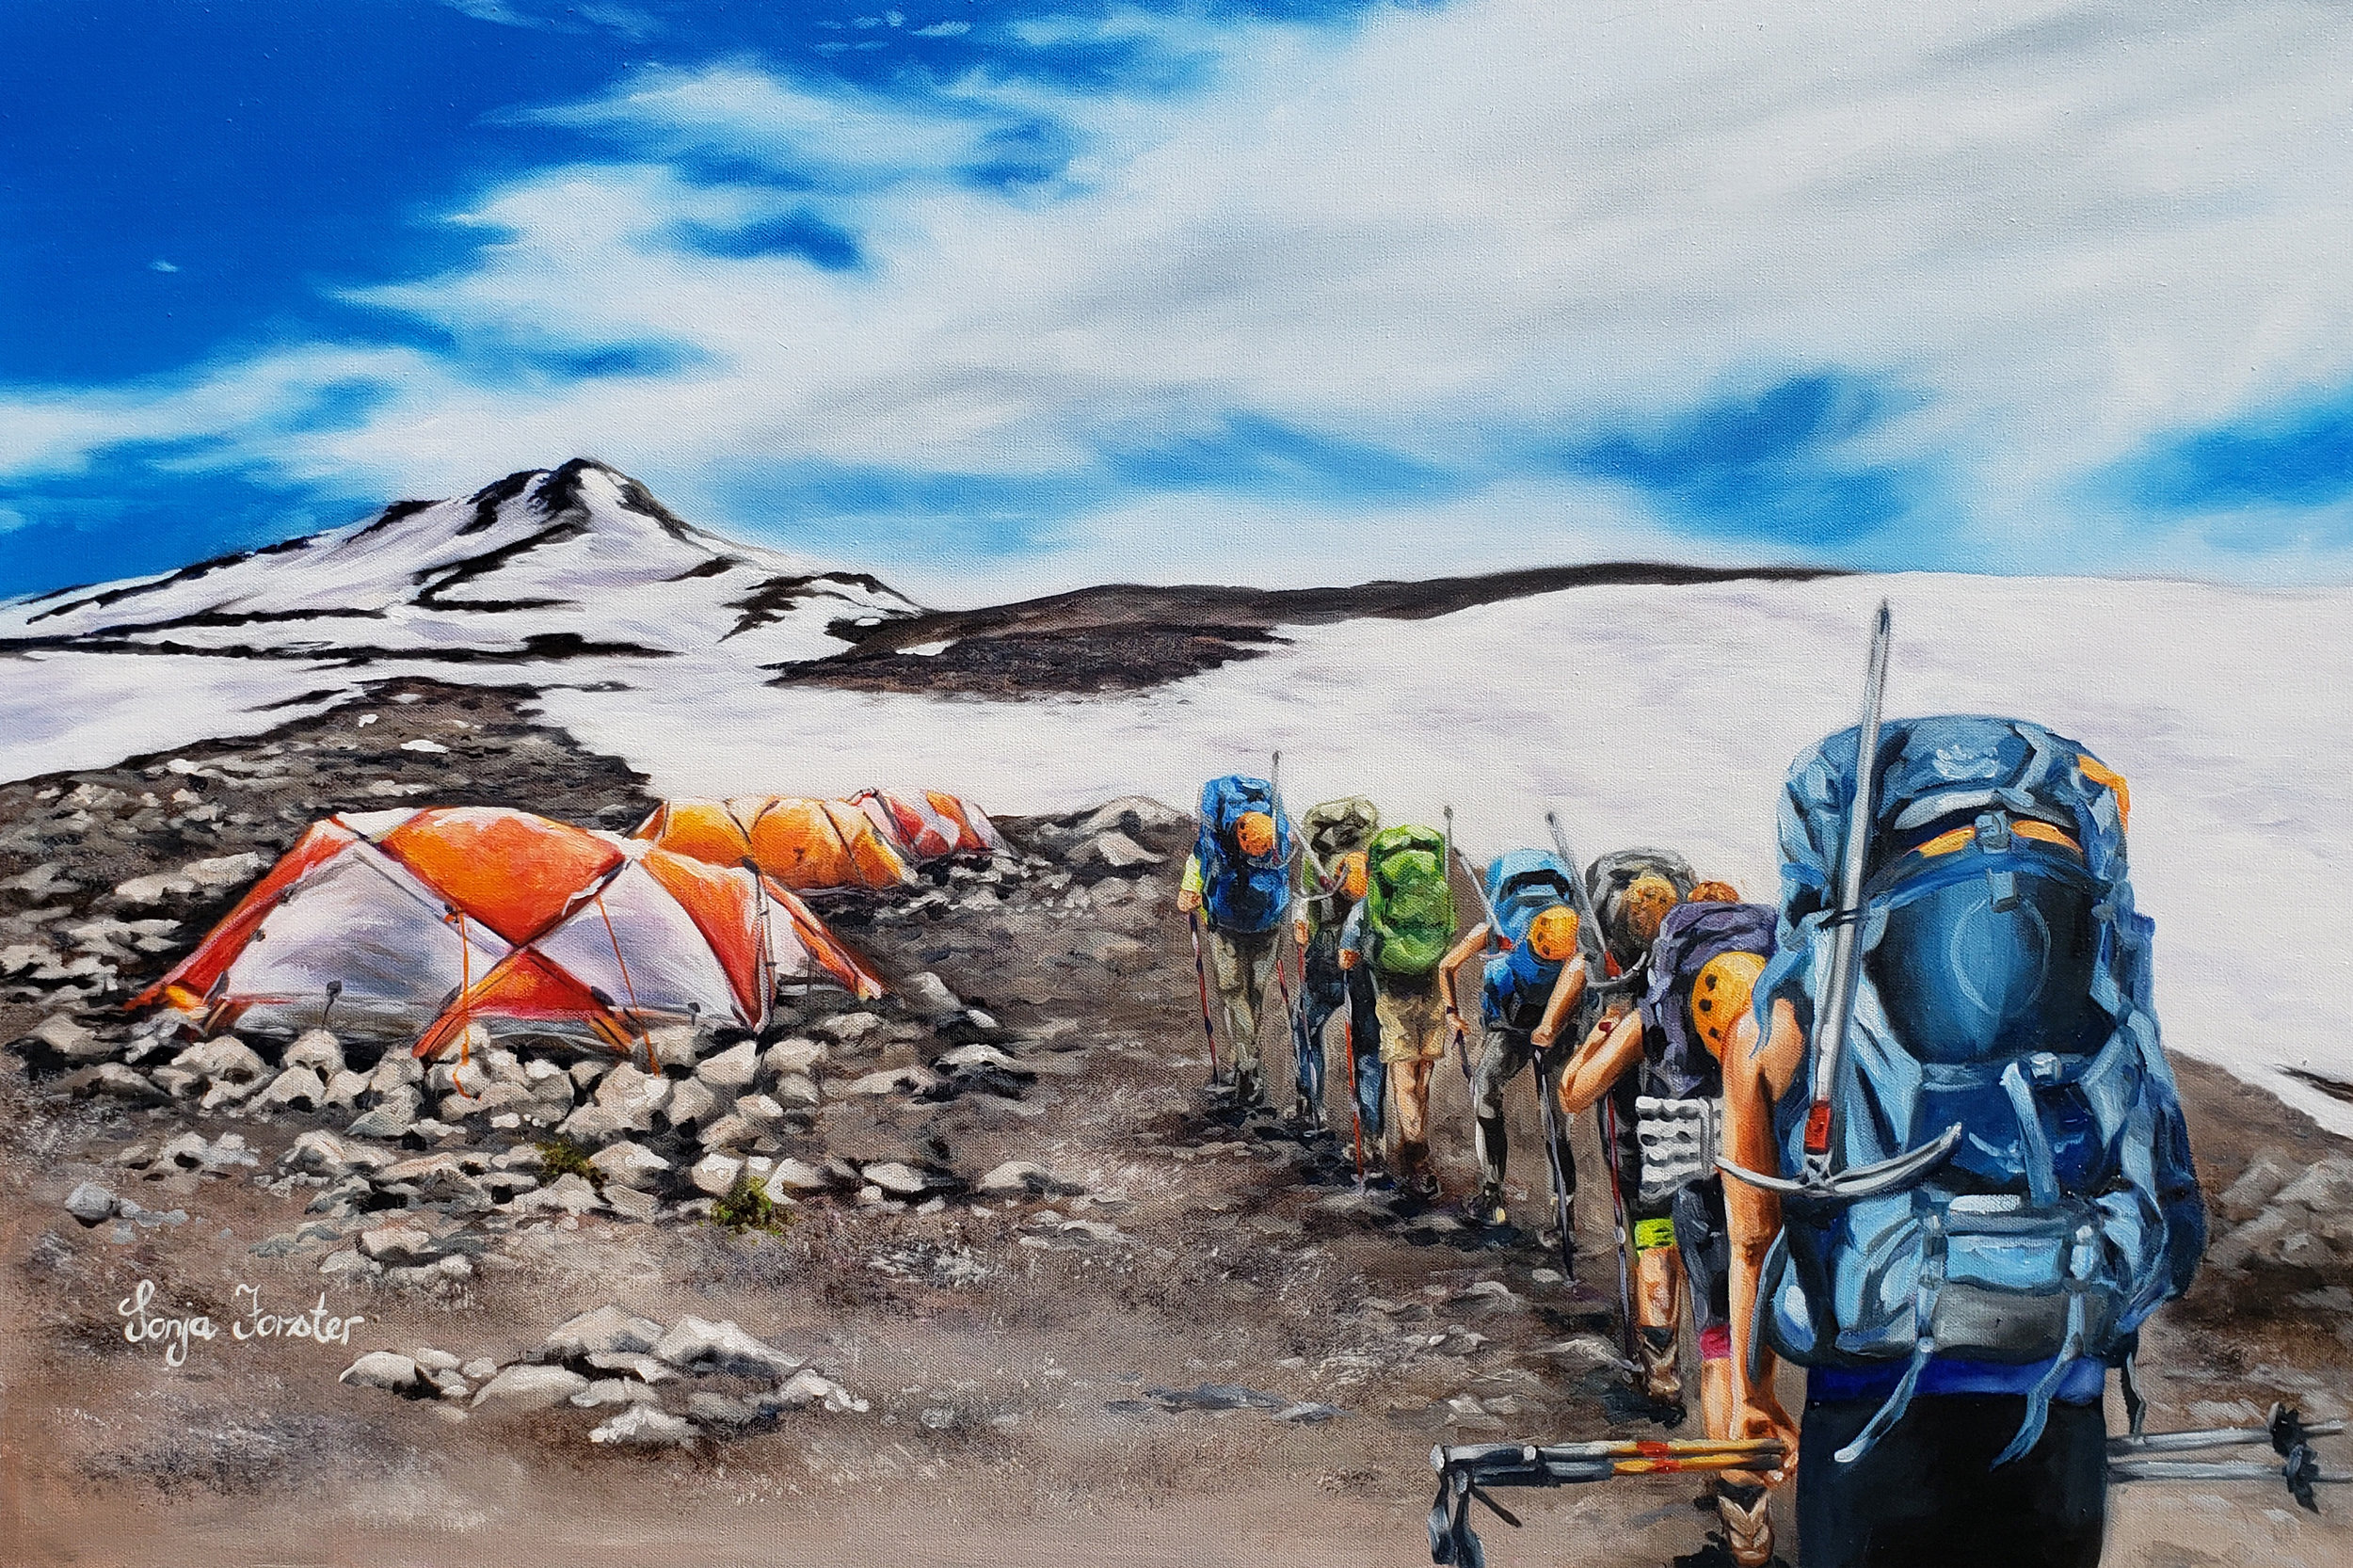 Mount Shasta Hike - Oil on blocked canvas | 24